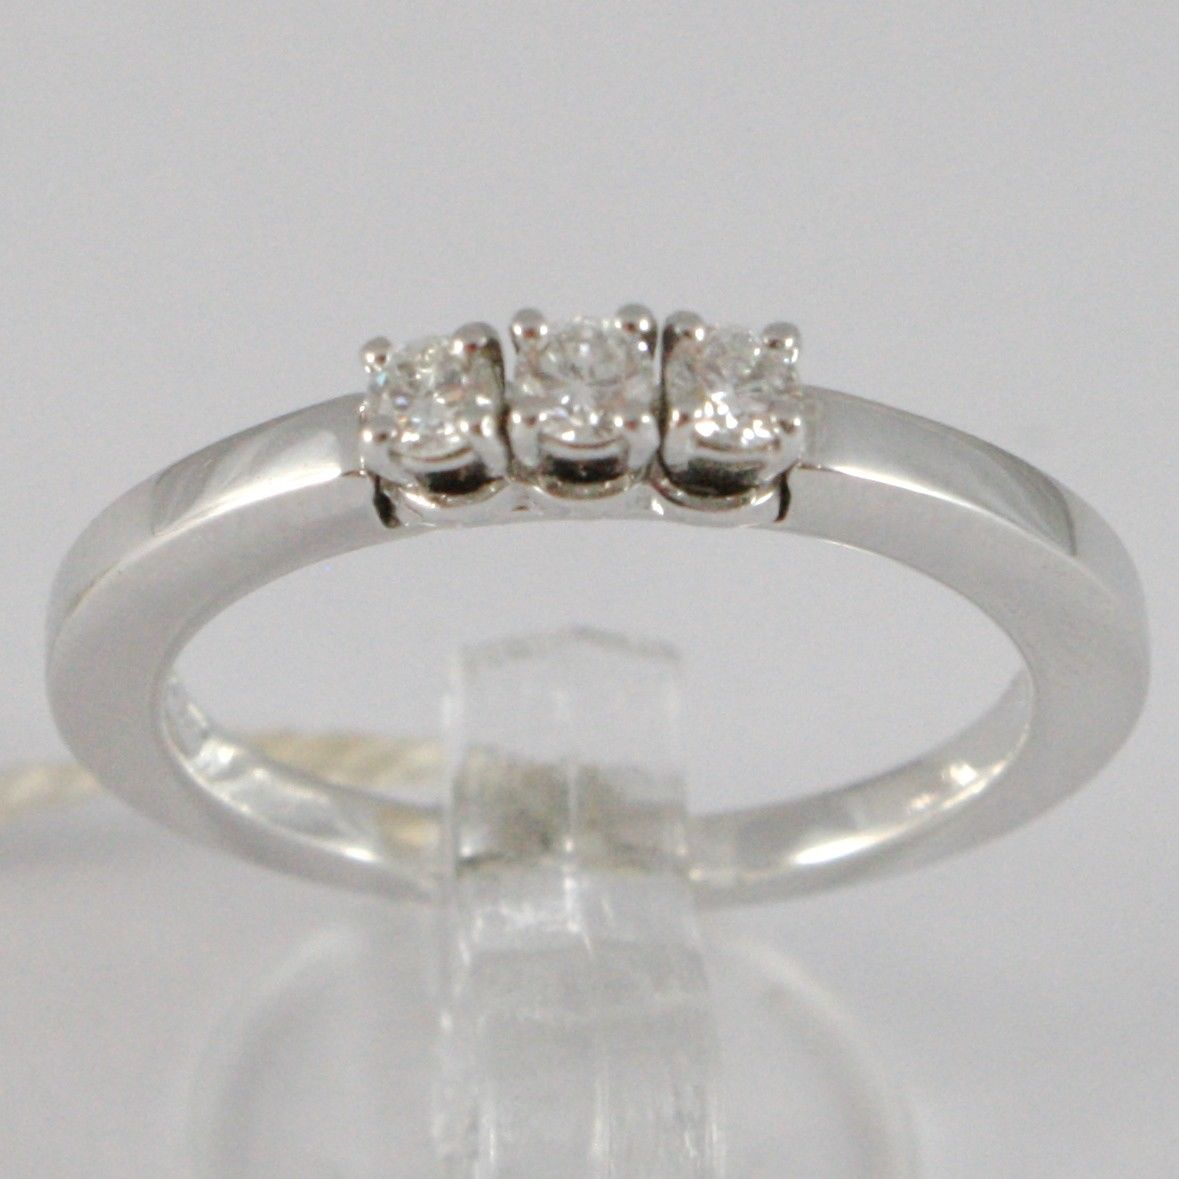 WHITE GOLD RING 750 18K, TRILOGY 3 DIAMONDS CARAT TOTAL 0.18, STEM SQUARE